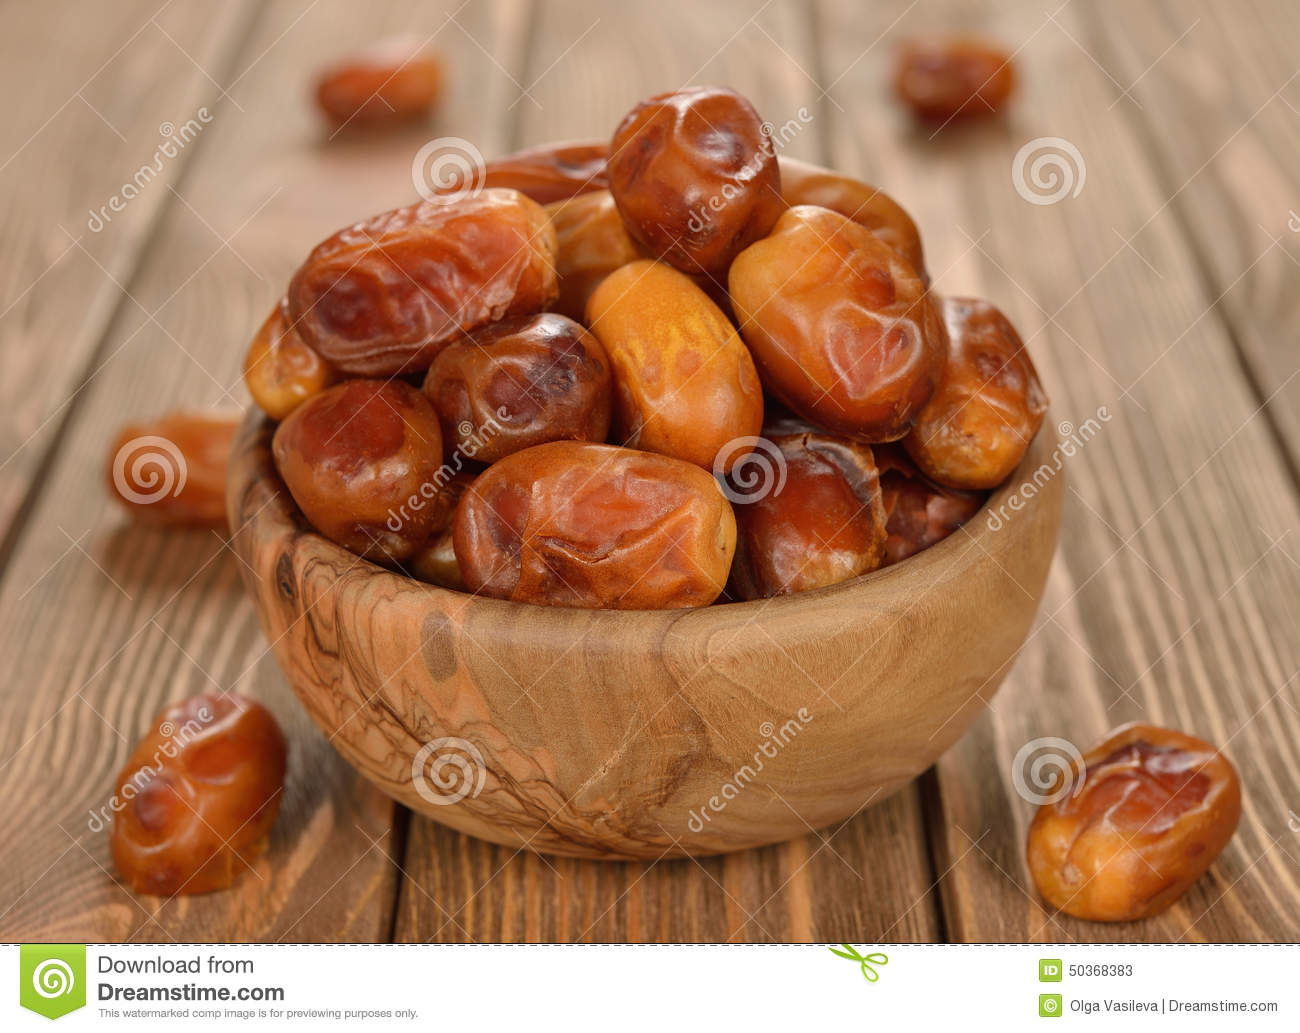 Dried Dates Stock Photo - Image: 50368383